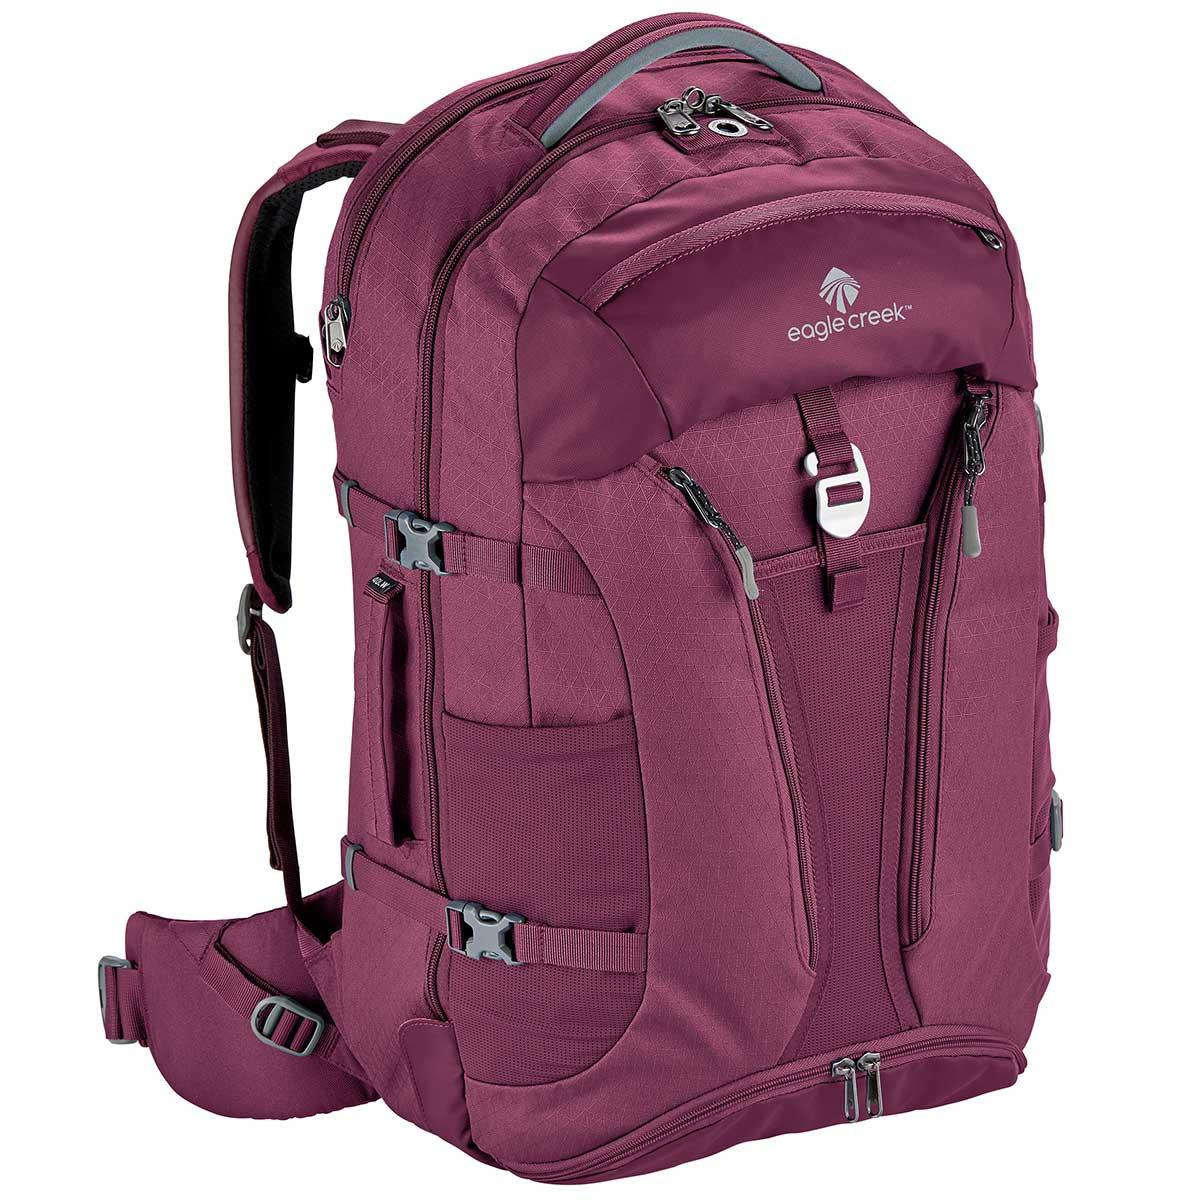 Eagle Creek Global Companion 40L Women's Backpack in Concord